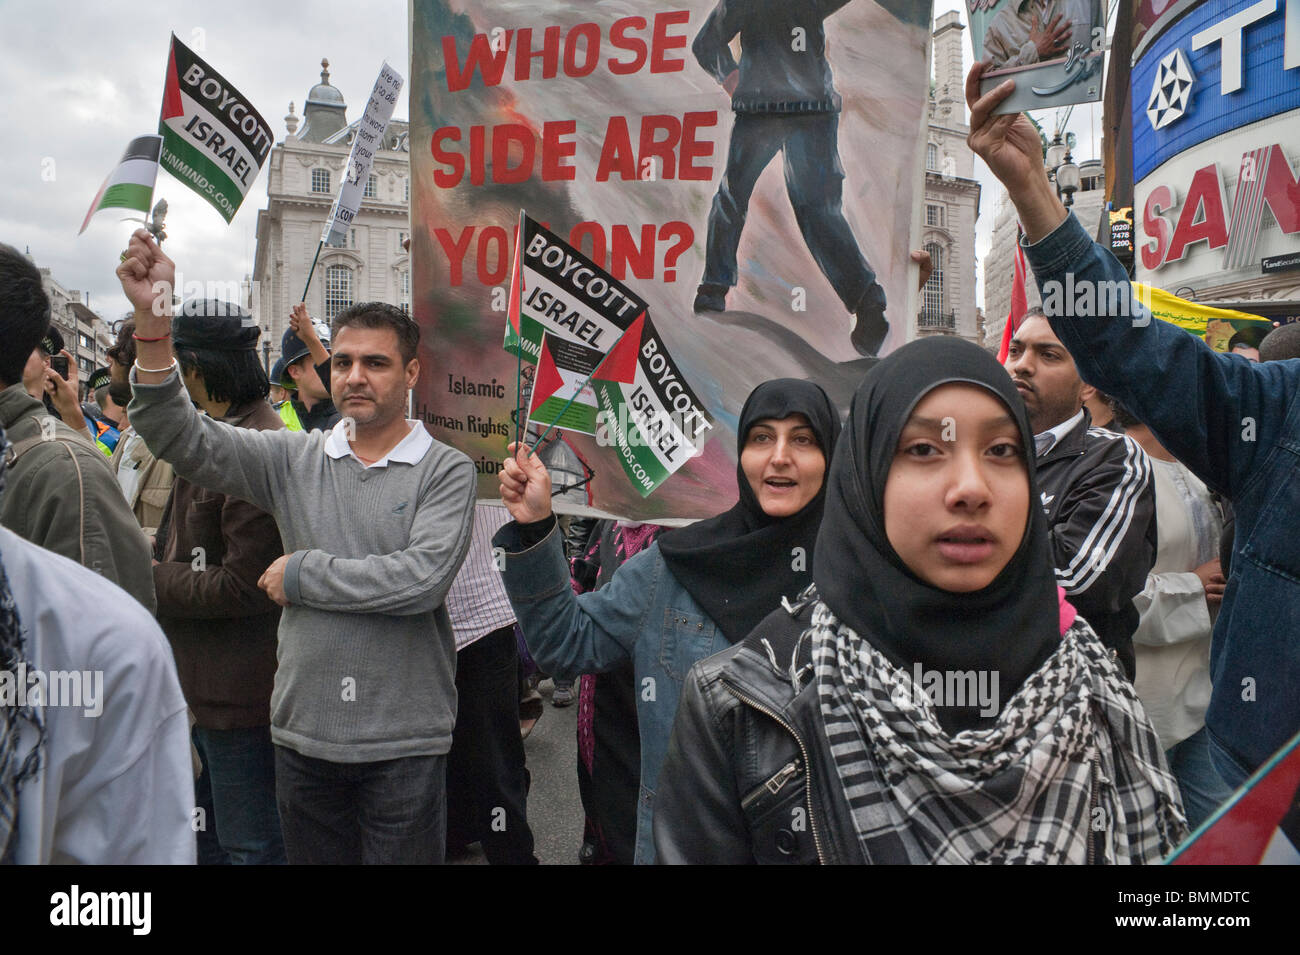 Marchers with Palestinian flags call for boycott of Israel on Al Quds Day (Jerusalem Day) march in London - Stock Image